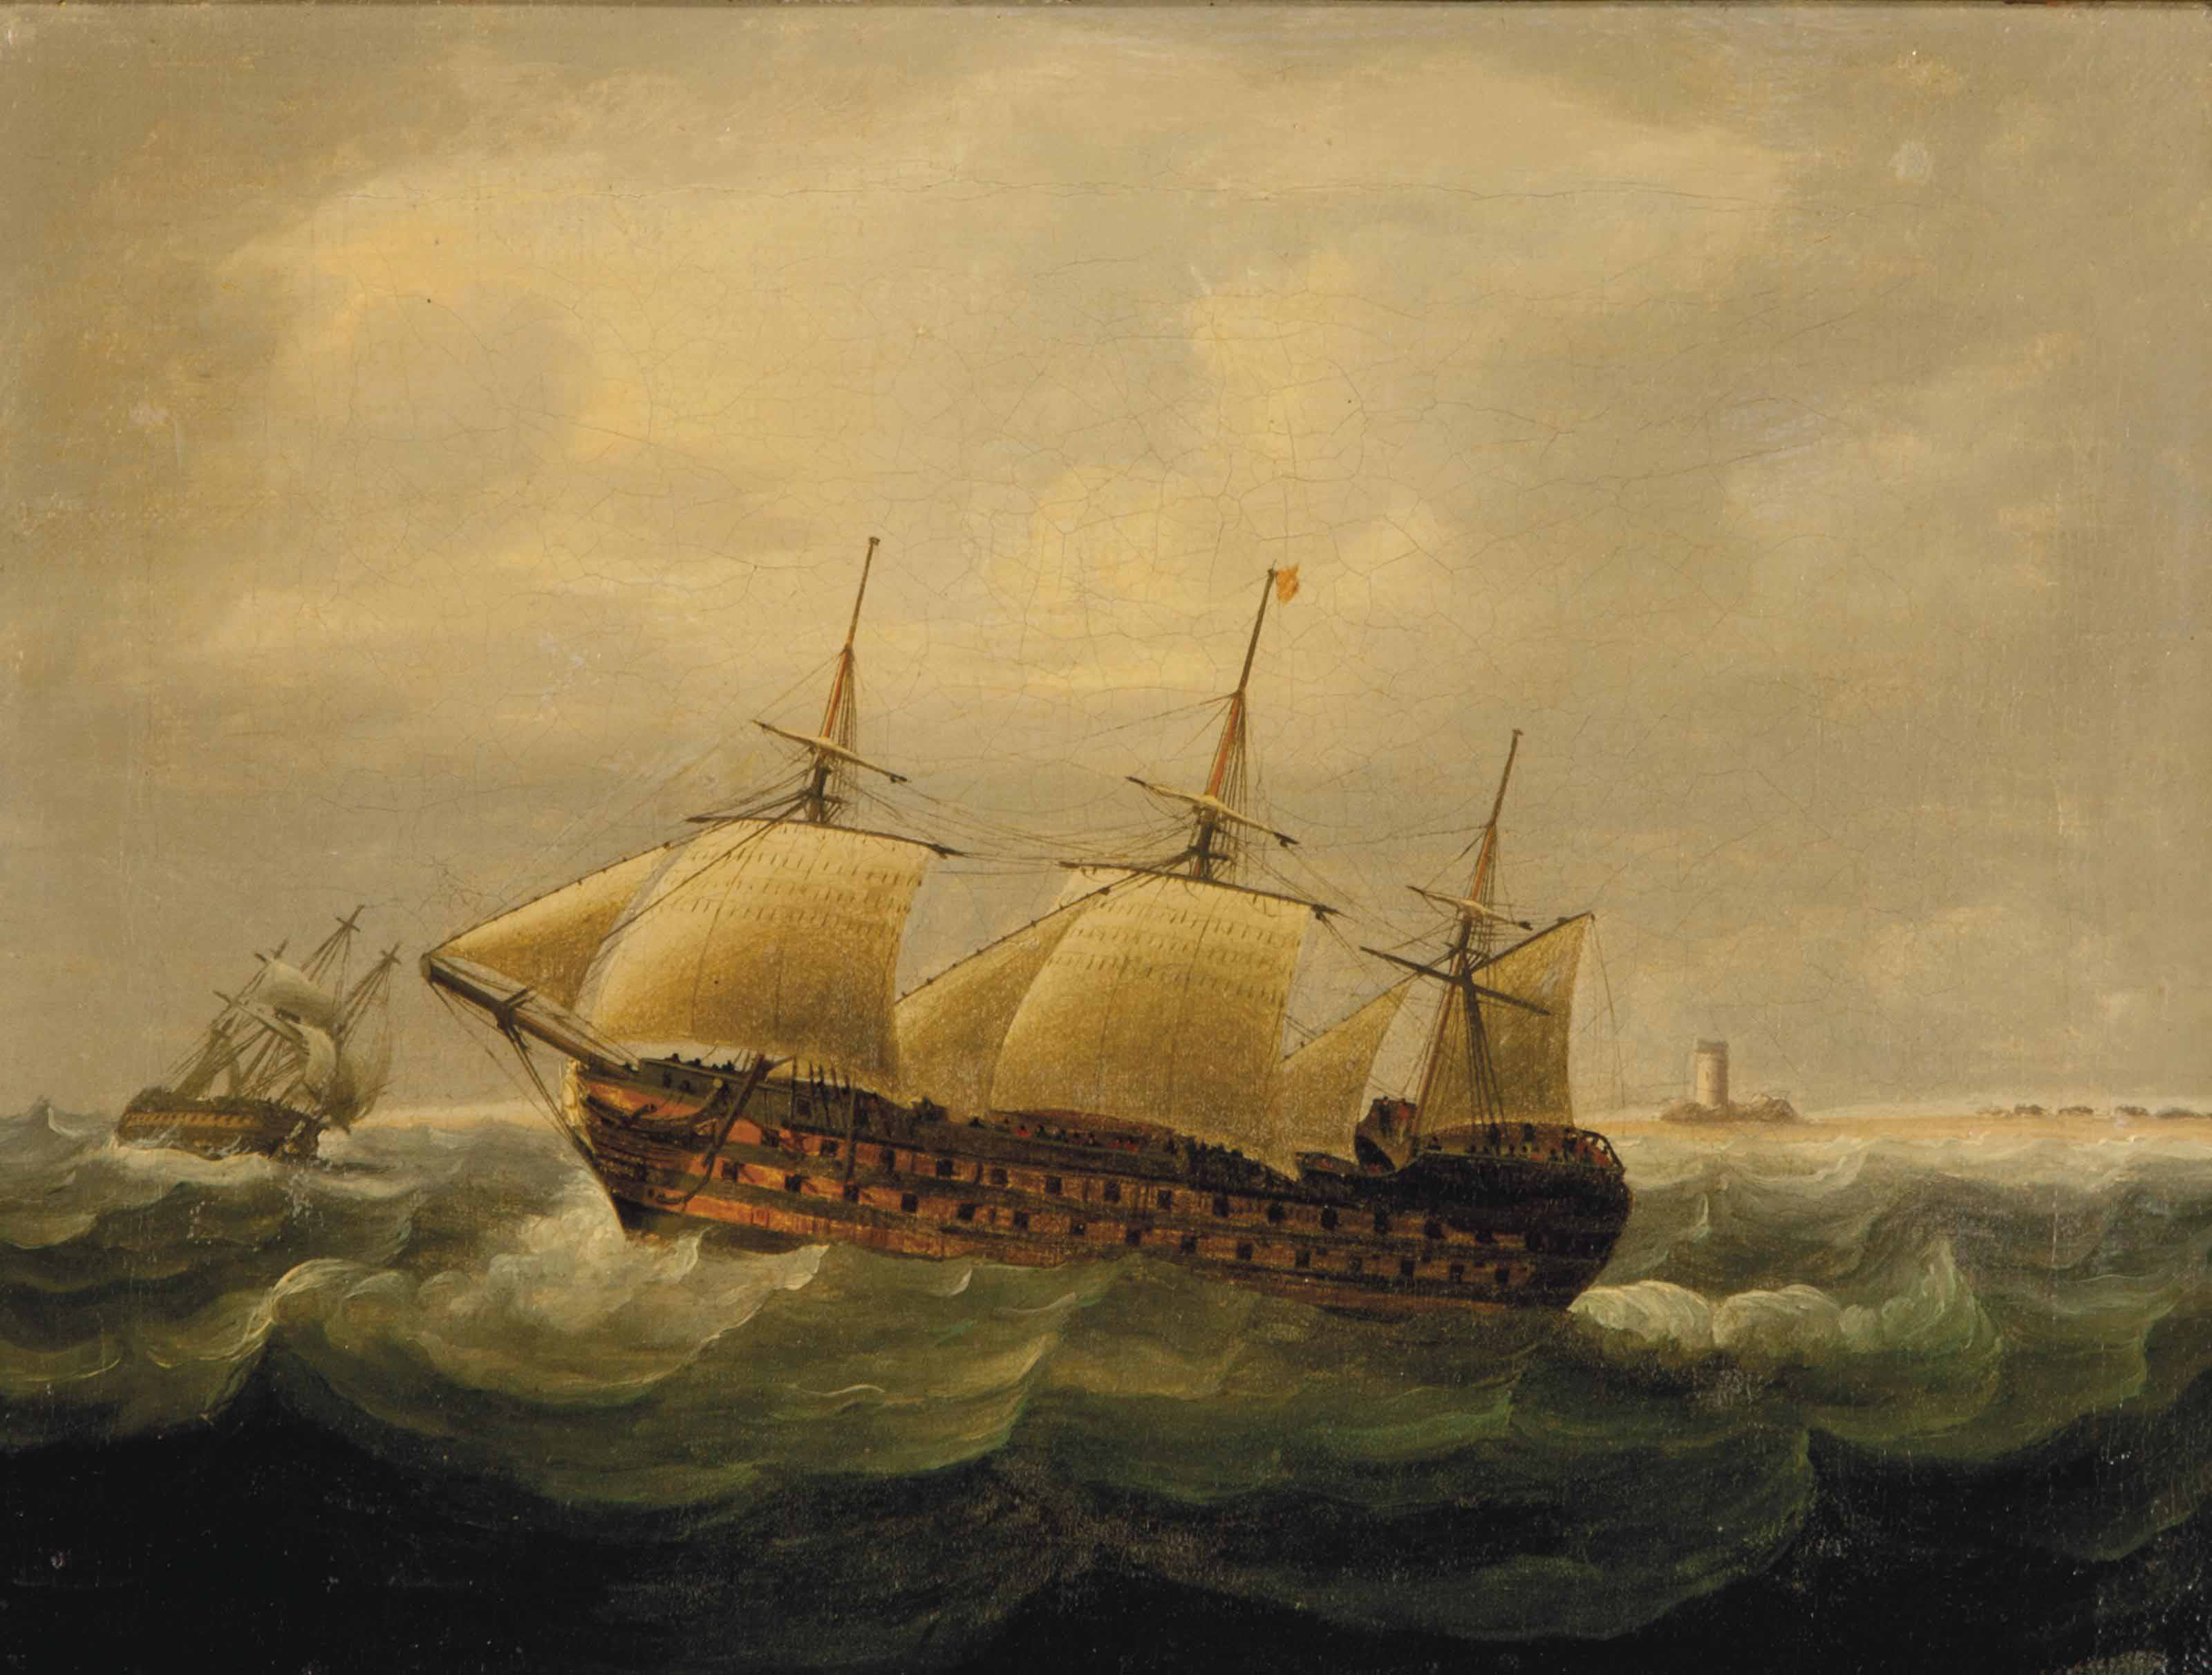 The wreck of the HMS St. George, Norway, 1811